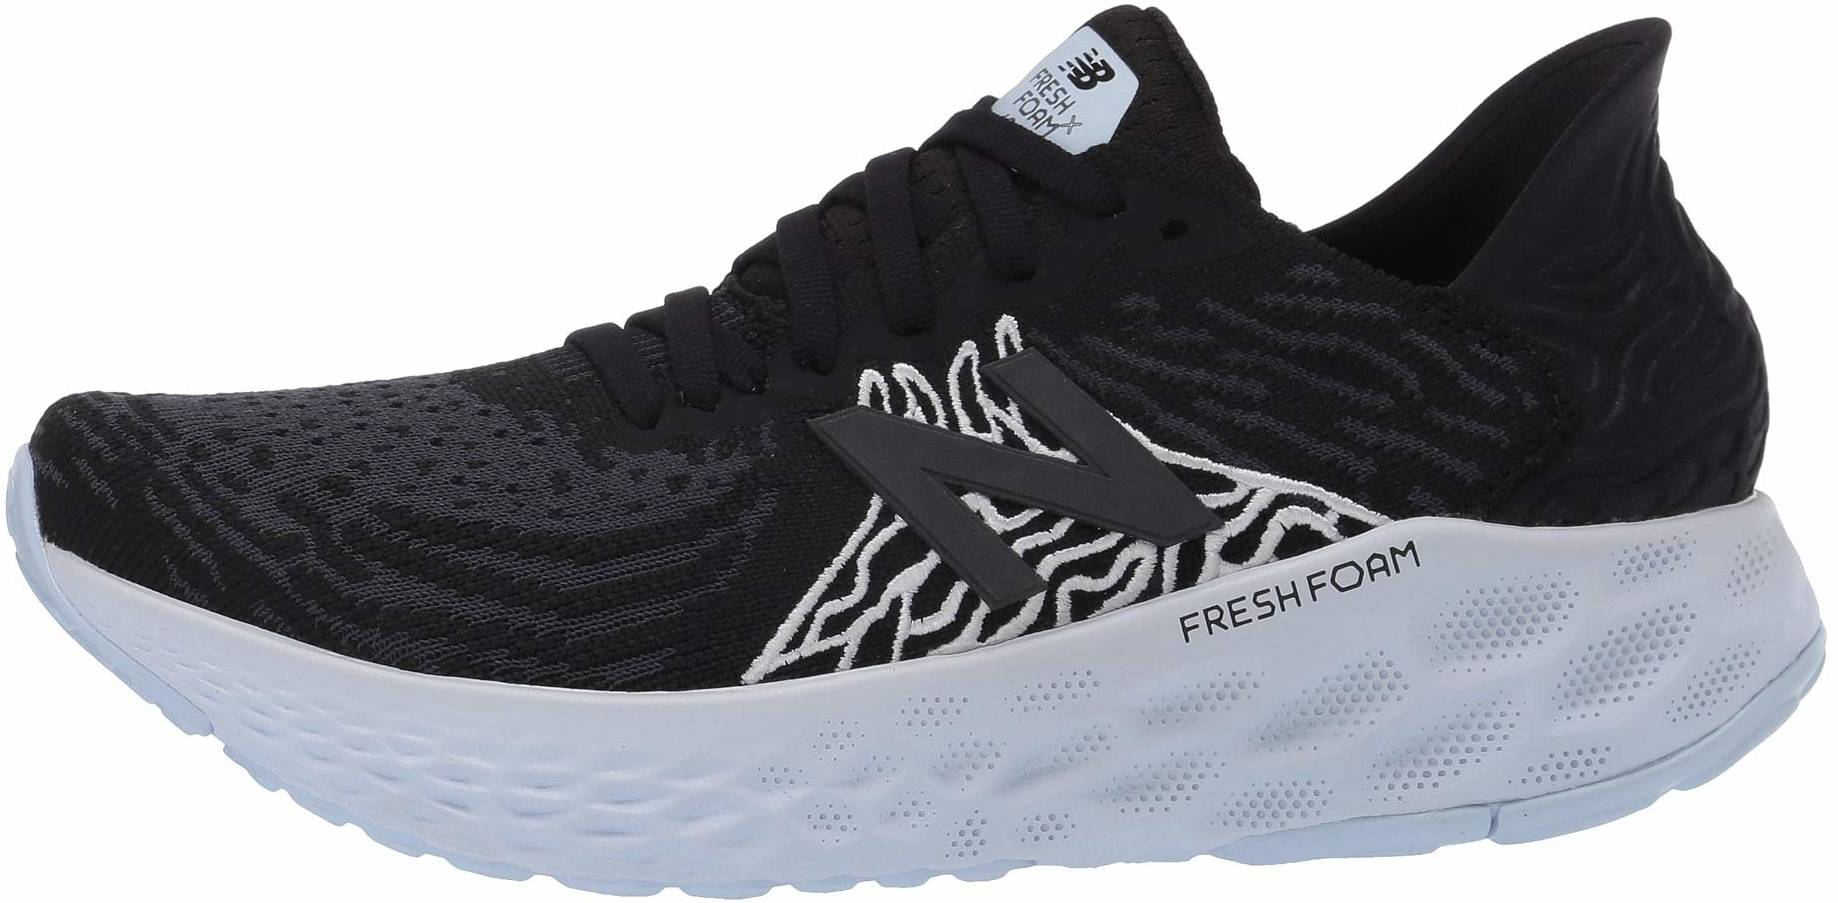 Formular Comportamiento Ajuste  New Balance Fresh Foam 1080 v10 - Deals ($96), Facts, Reviews (2021) |  RunRepeat